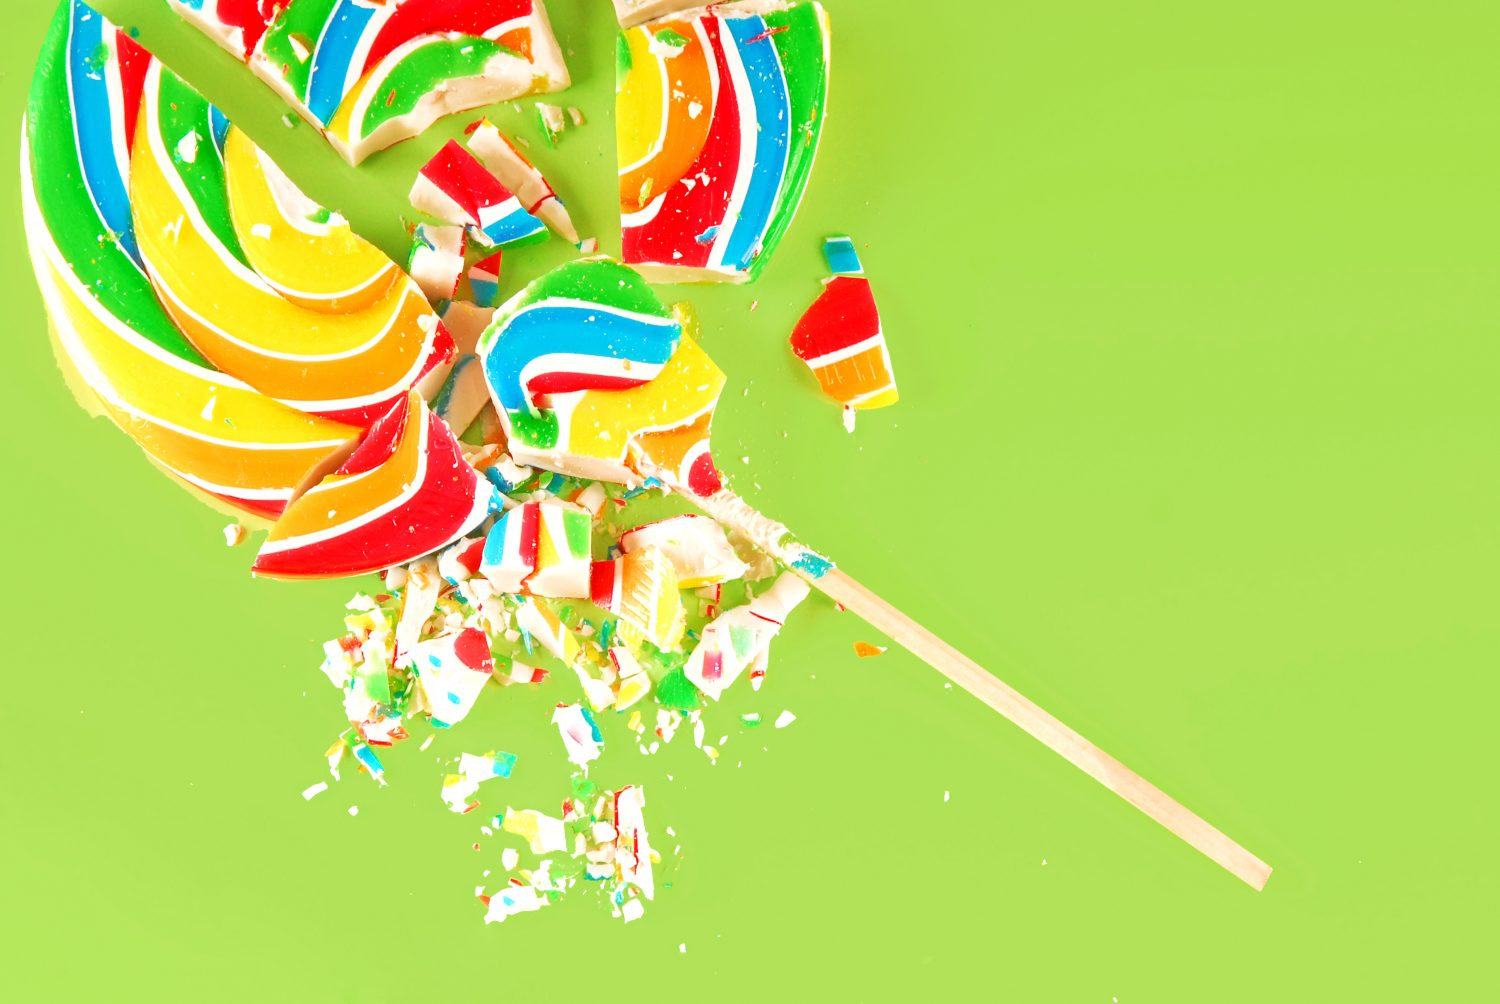 Bitcoin Rewards Site Lolli Raises $10M, Eyes Gaming Sector for Growth